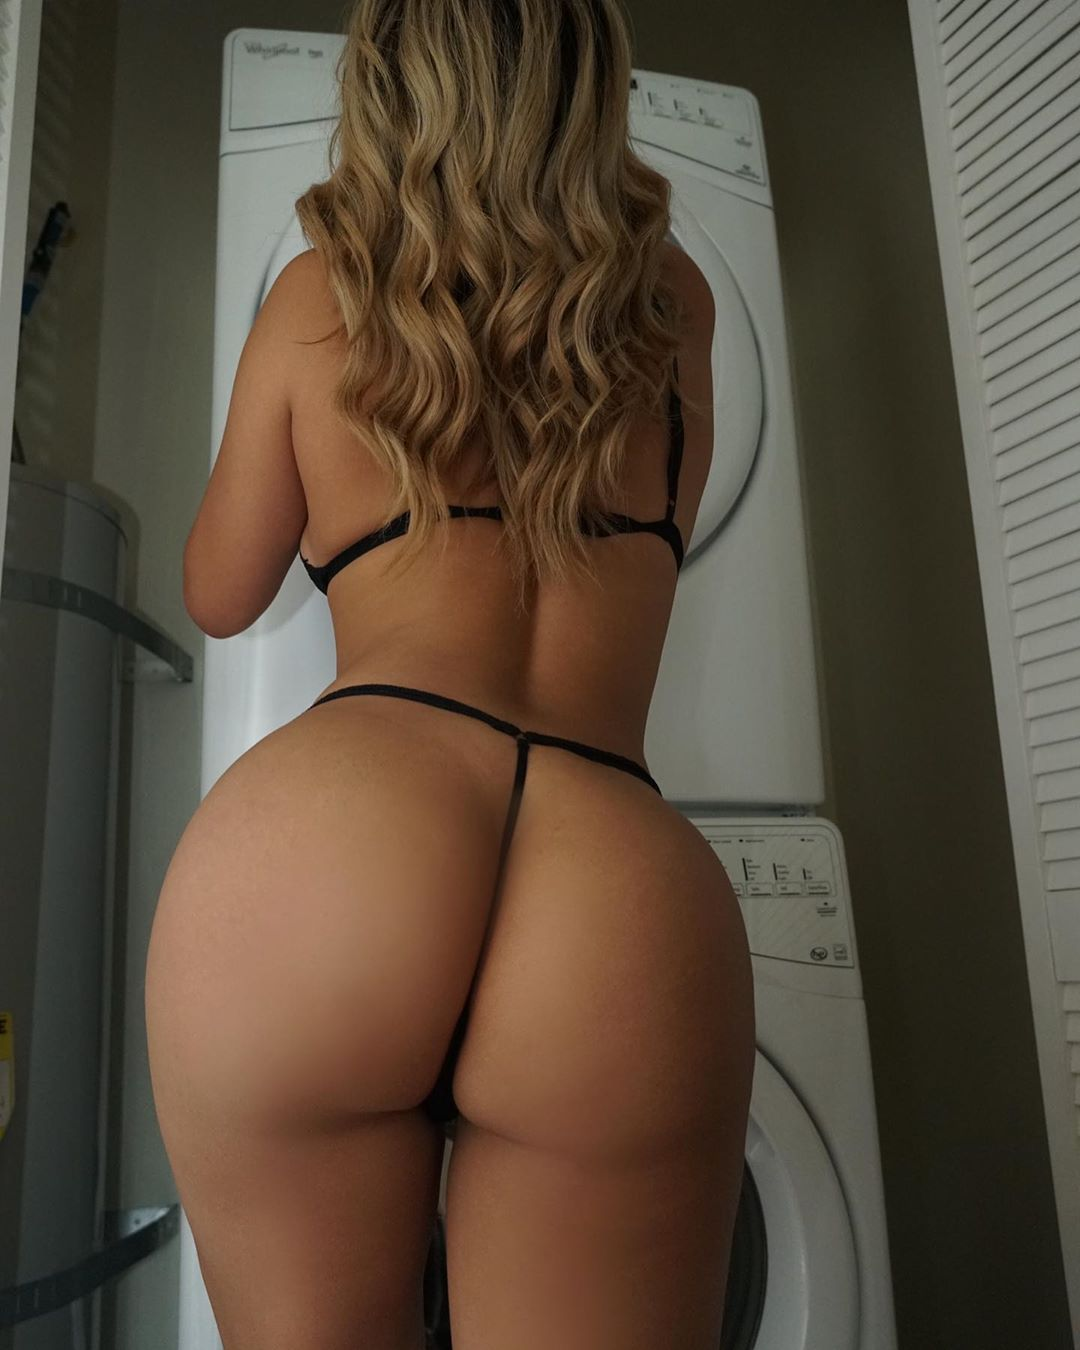 Thechantal Nude The Chantal Mia Onlyfans Leaked! 0028